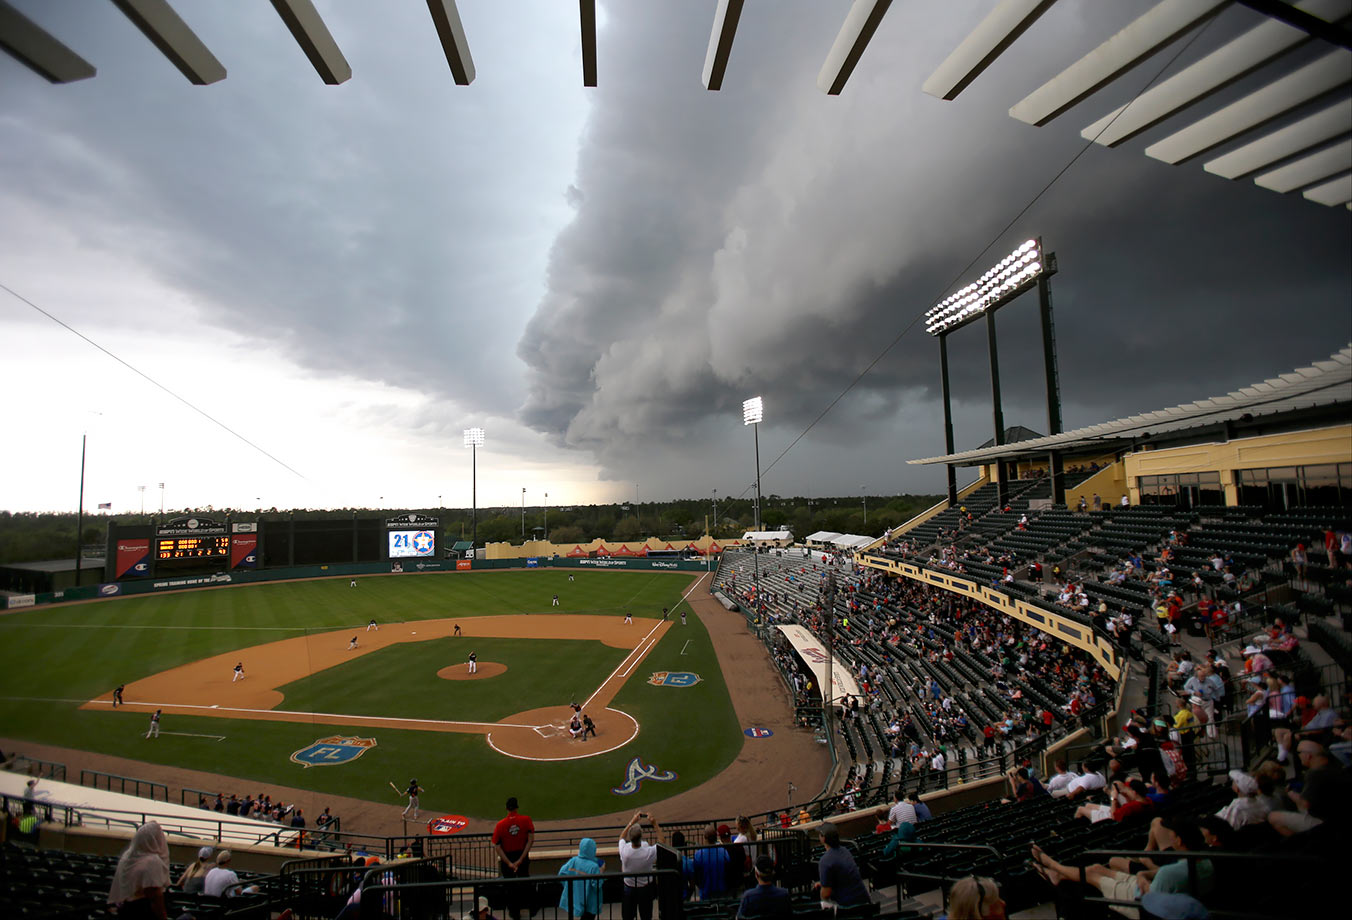 Storm clouds roll in over Champion Stadium during the seventh inning of a spring training game between the Atlanta Braves and the Houston Astrosin Kissimmee, Fla.